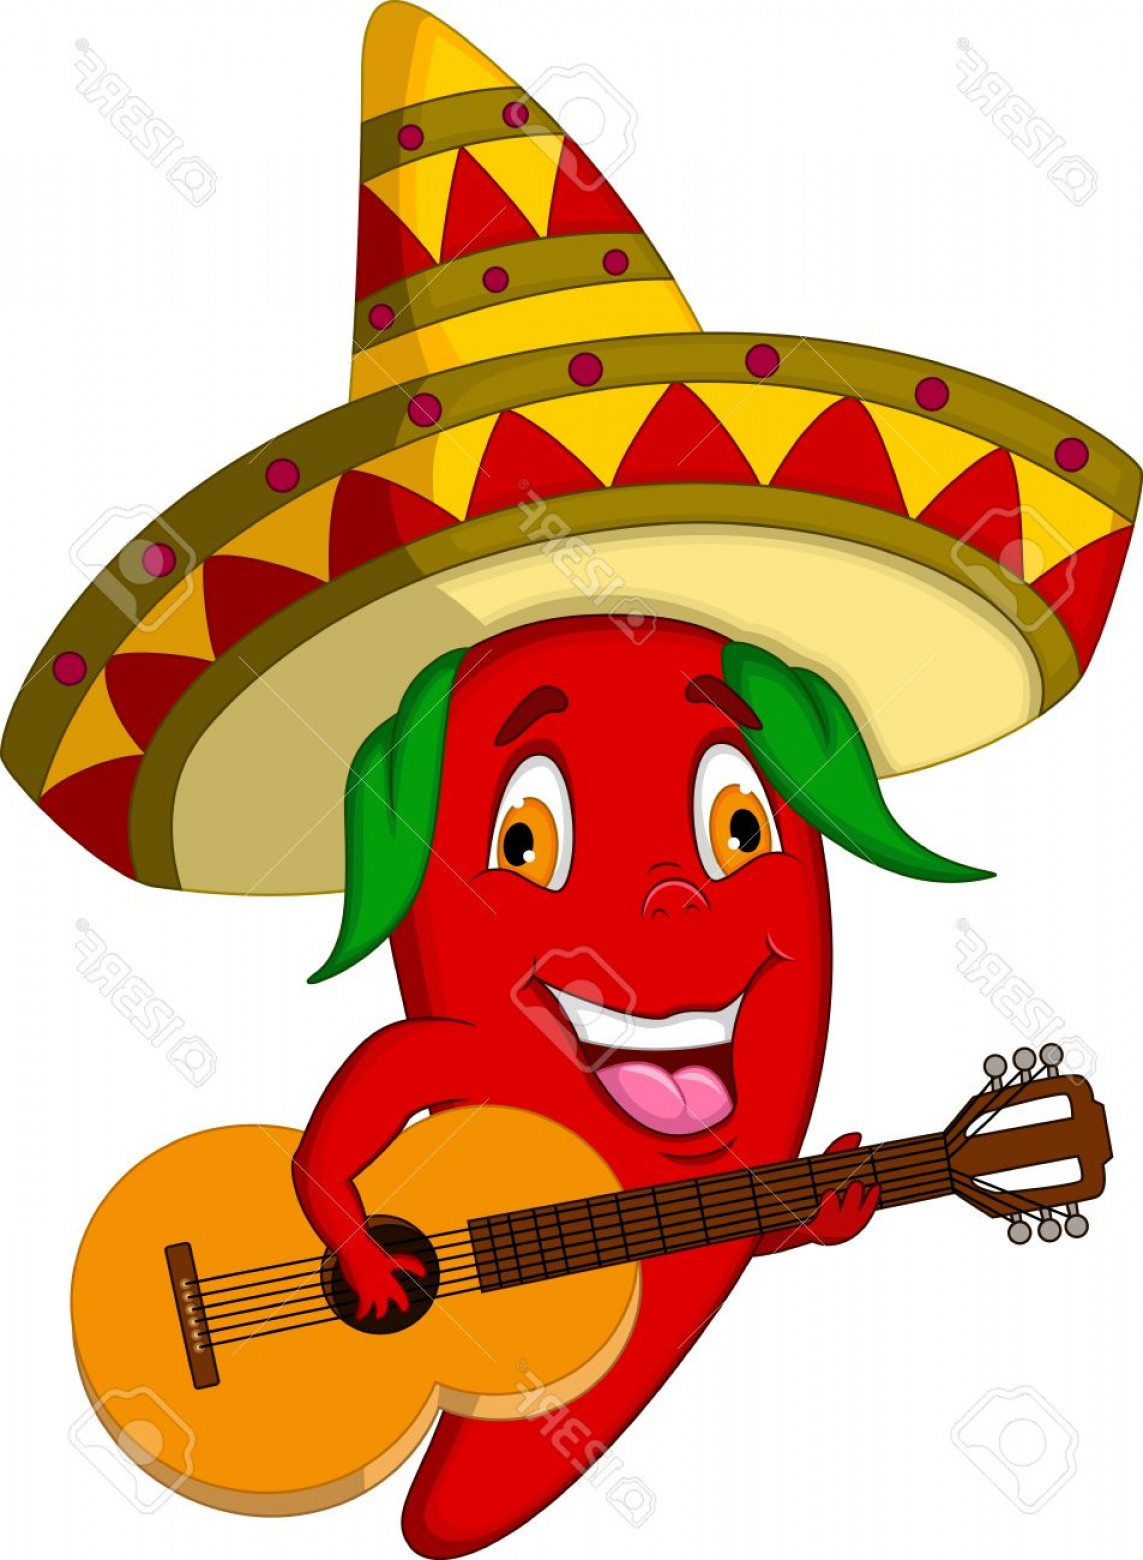 Vector Mexican Chili: Photostock Vector Red Chili Pepper Cartoon Character With Mexican Hat And Mustache Playing A Guitar